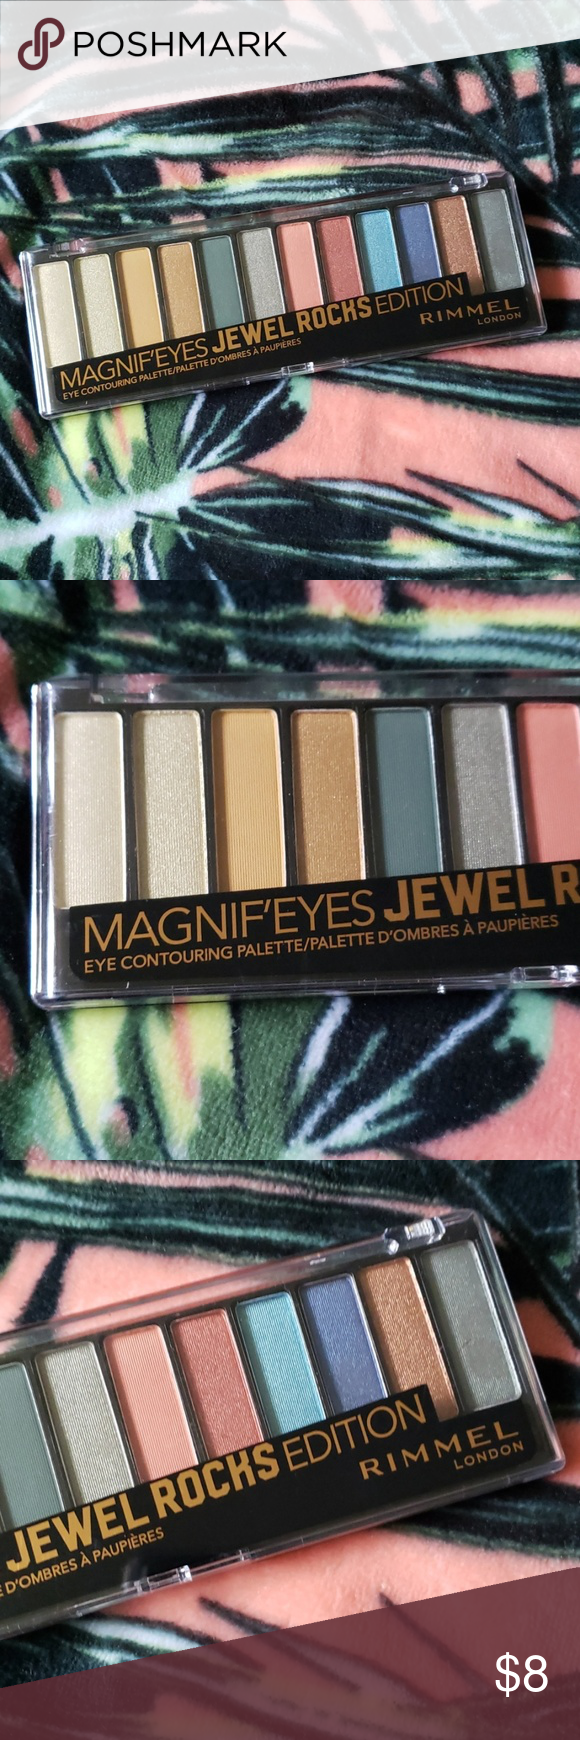 RIMMEL Jewel Rock Eyeshadow Palette NEW New and sealed